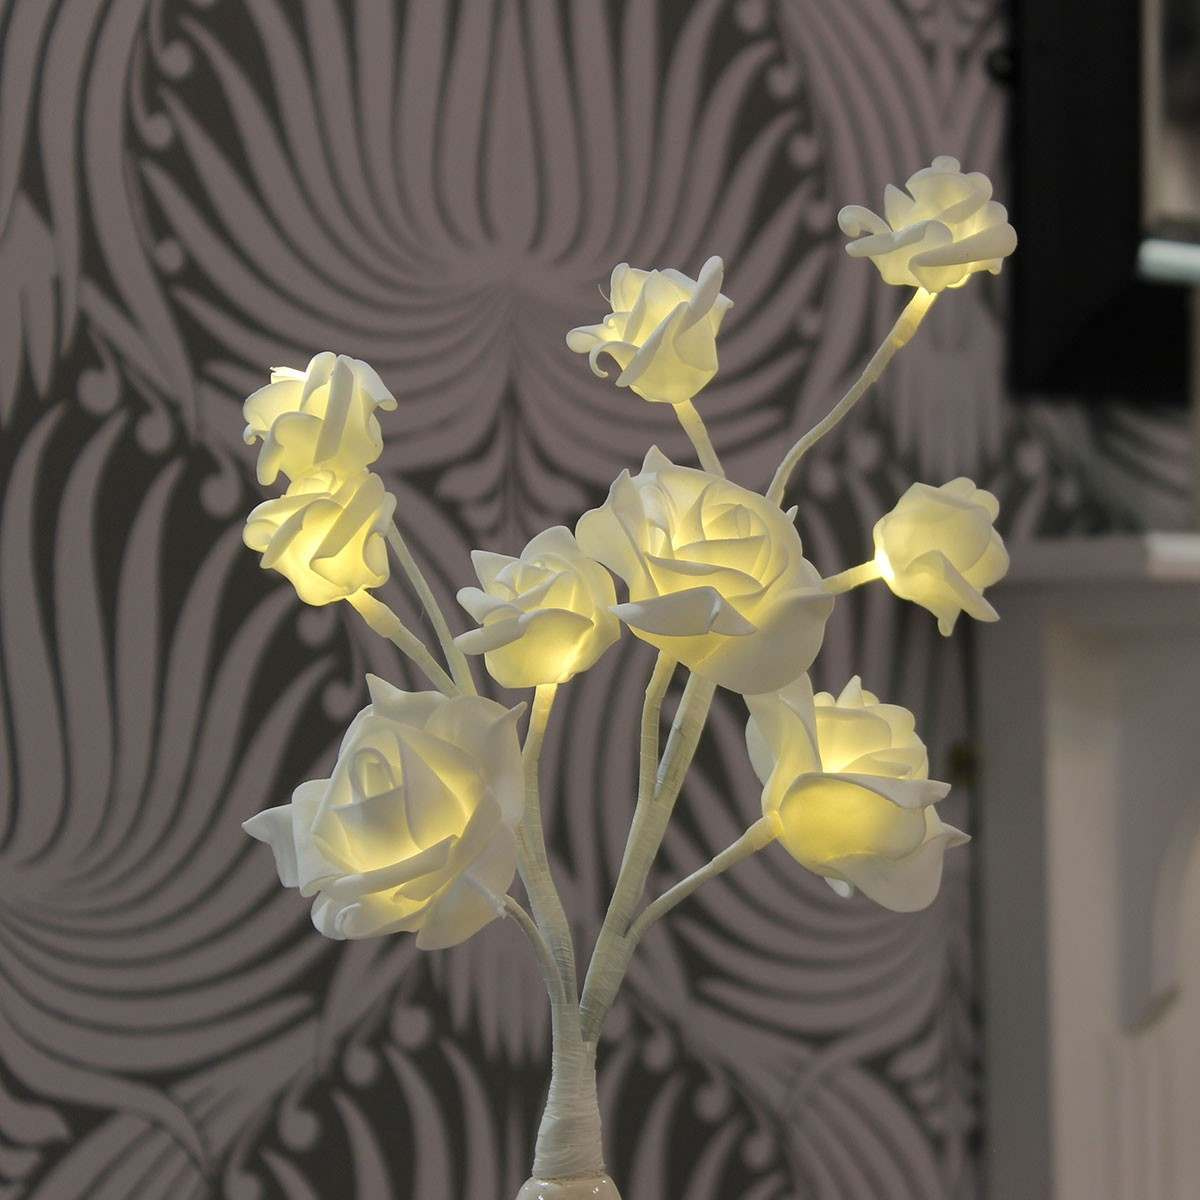 Click to view product details and reviews for 35cm Battery Rose Lights With Vase 9 Warm White Leds.